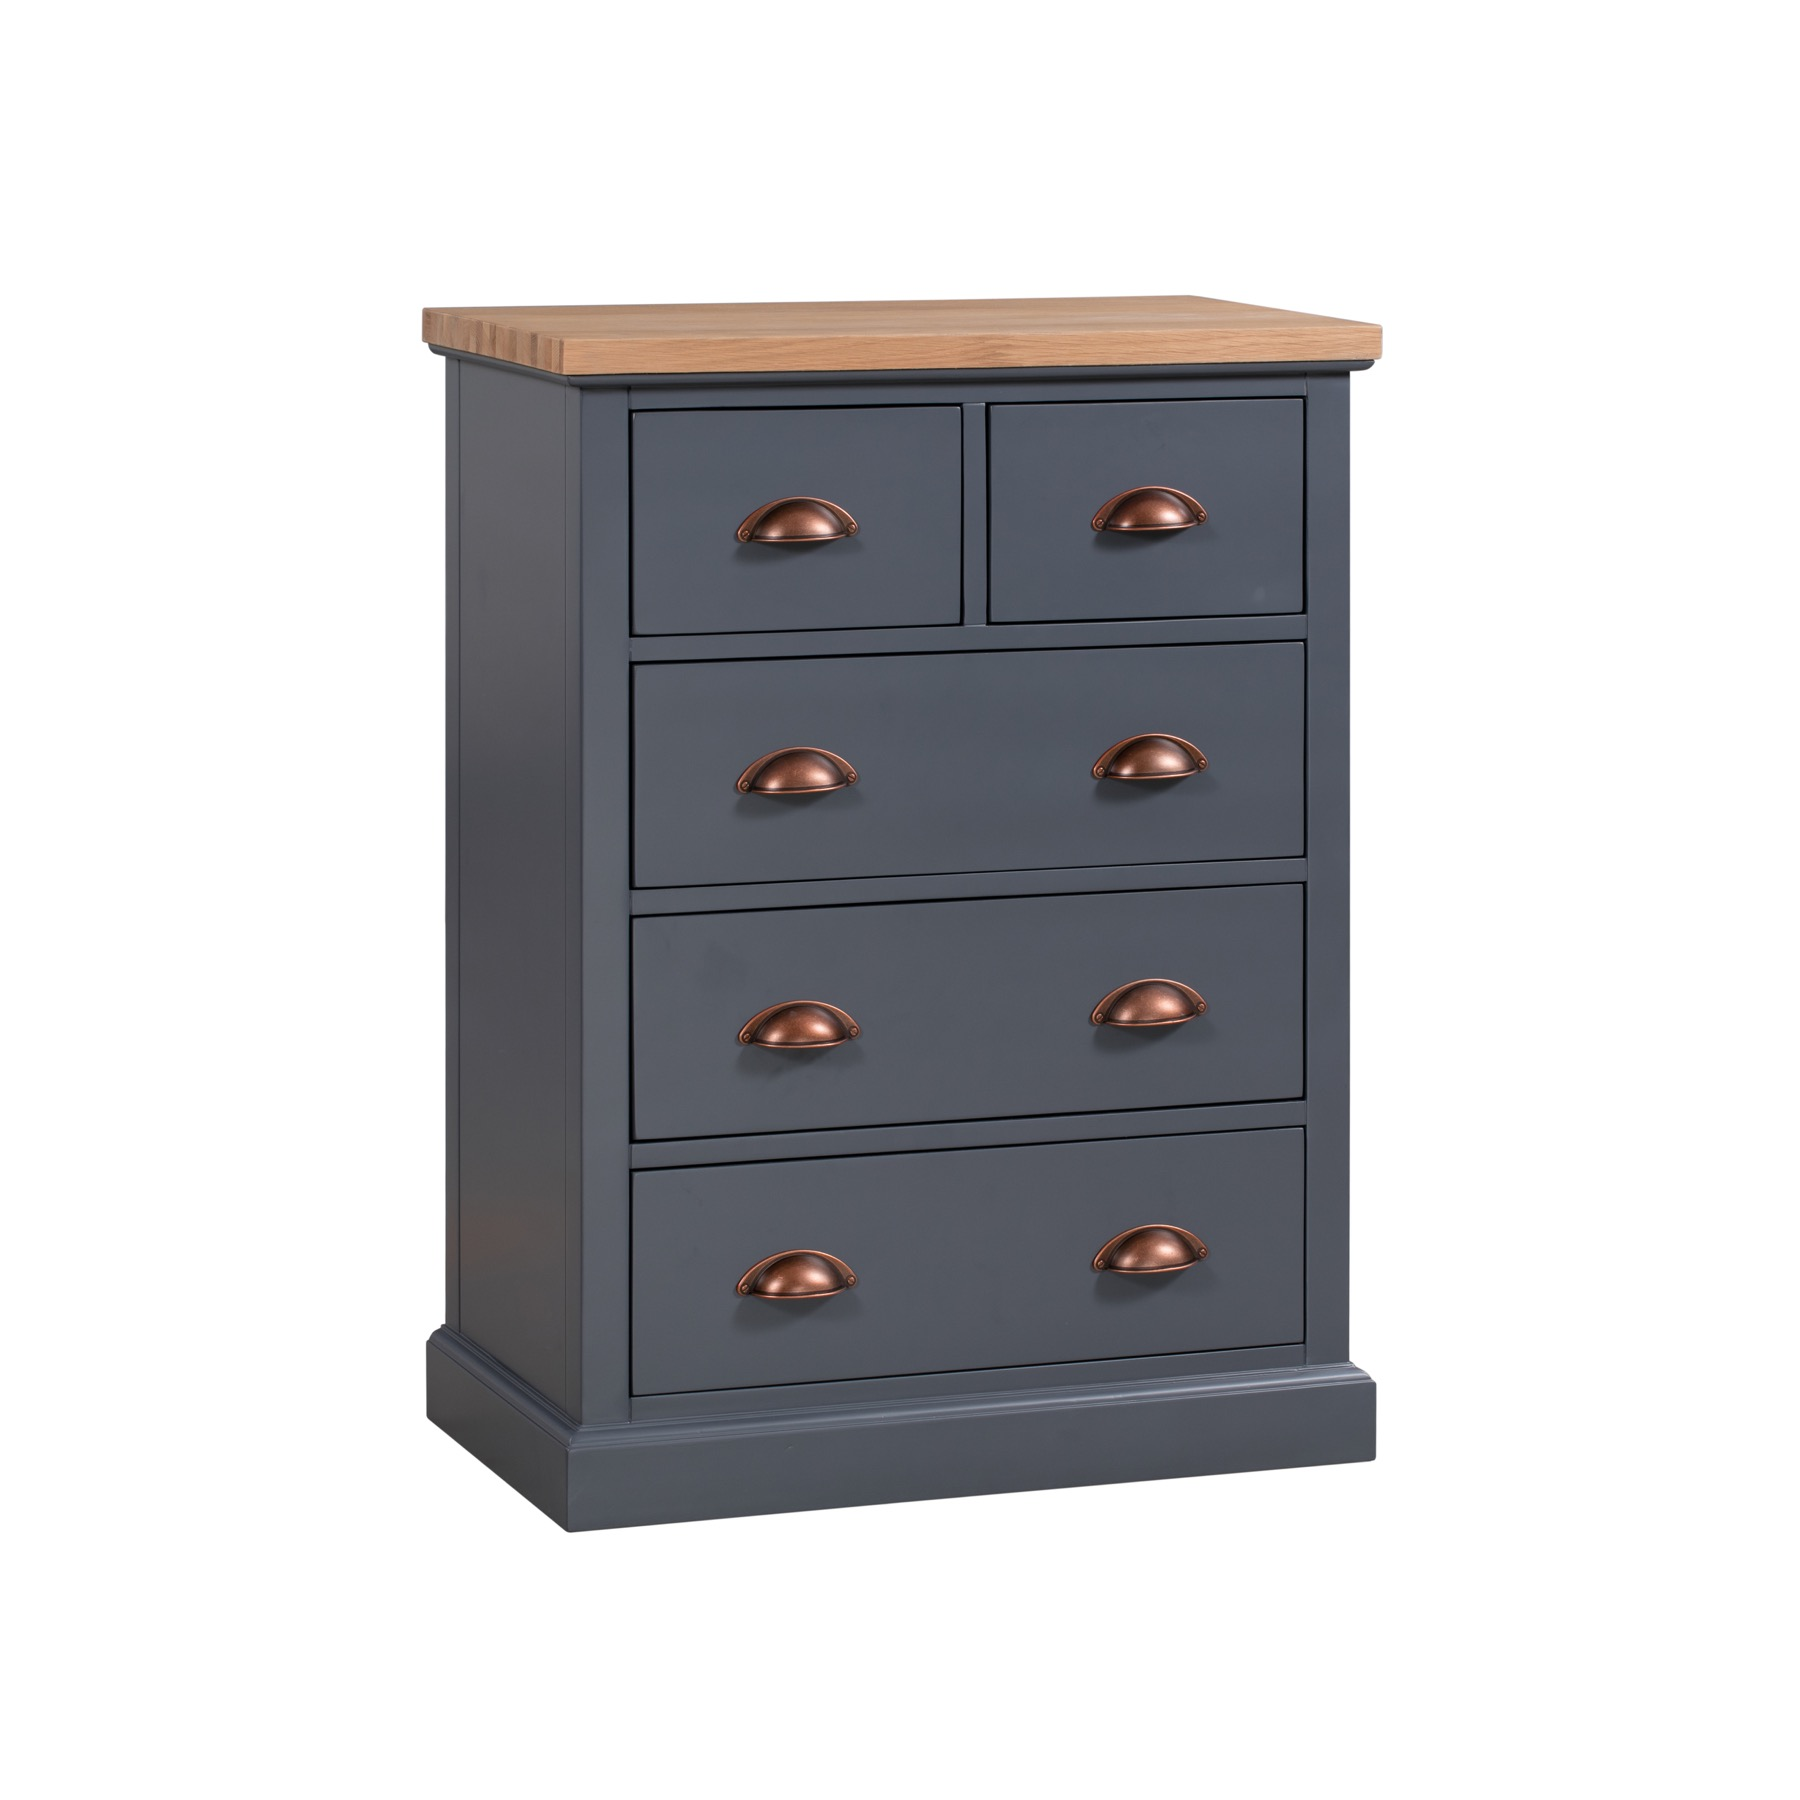 Grey Chest of Drawers - Grayson Range